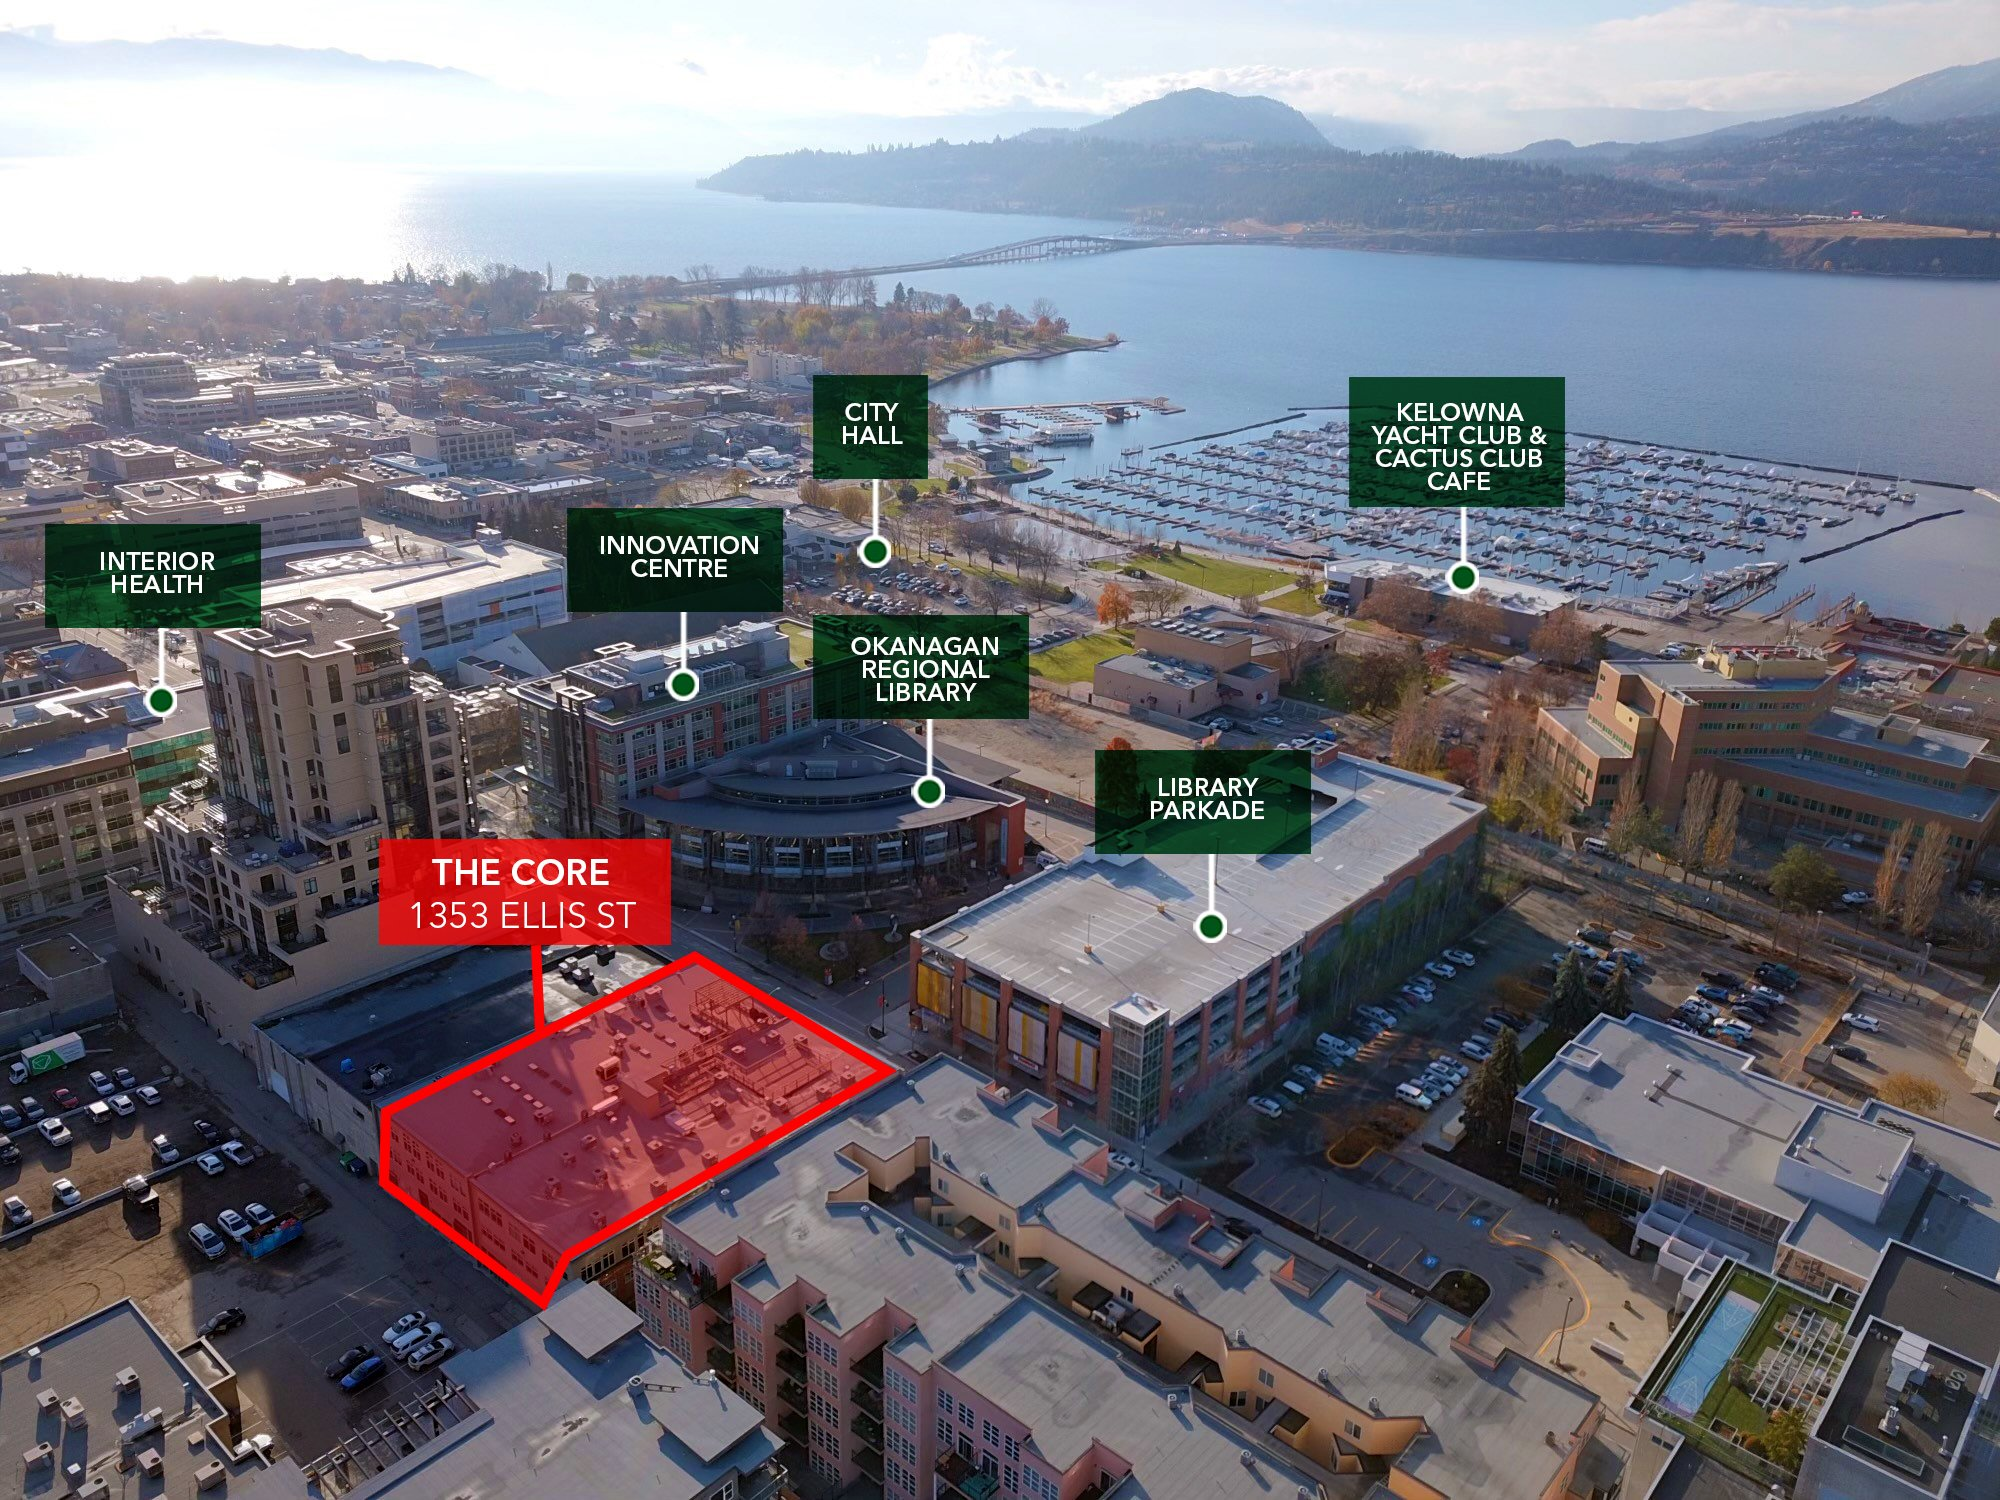 #103-1353 Ellis Street, Kelowna, BC - Downtown Retail/Office Space at The Core Building